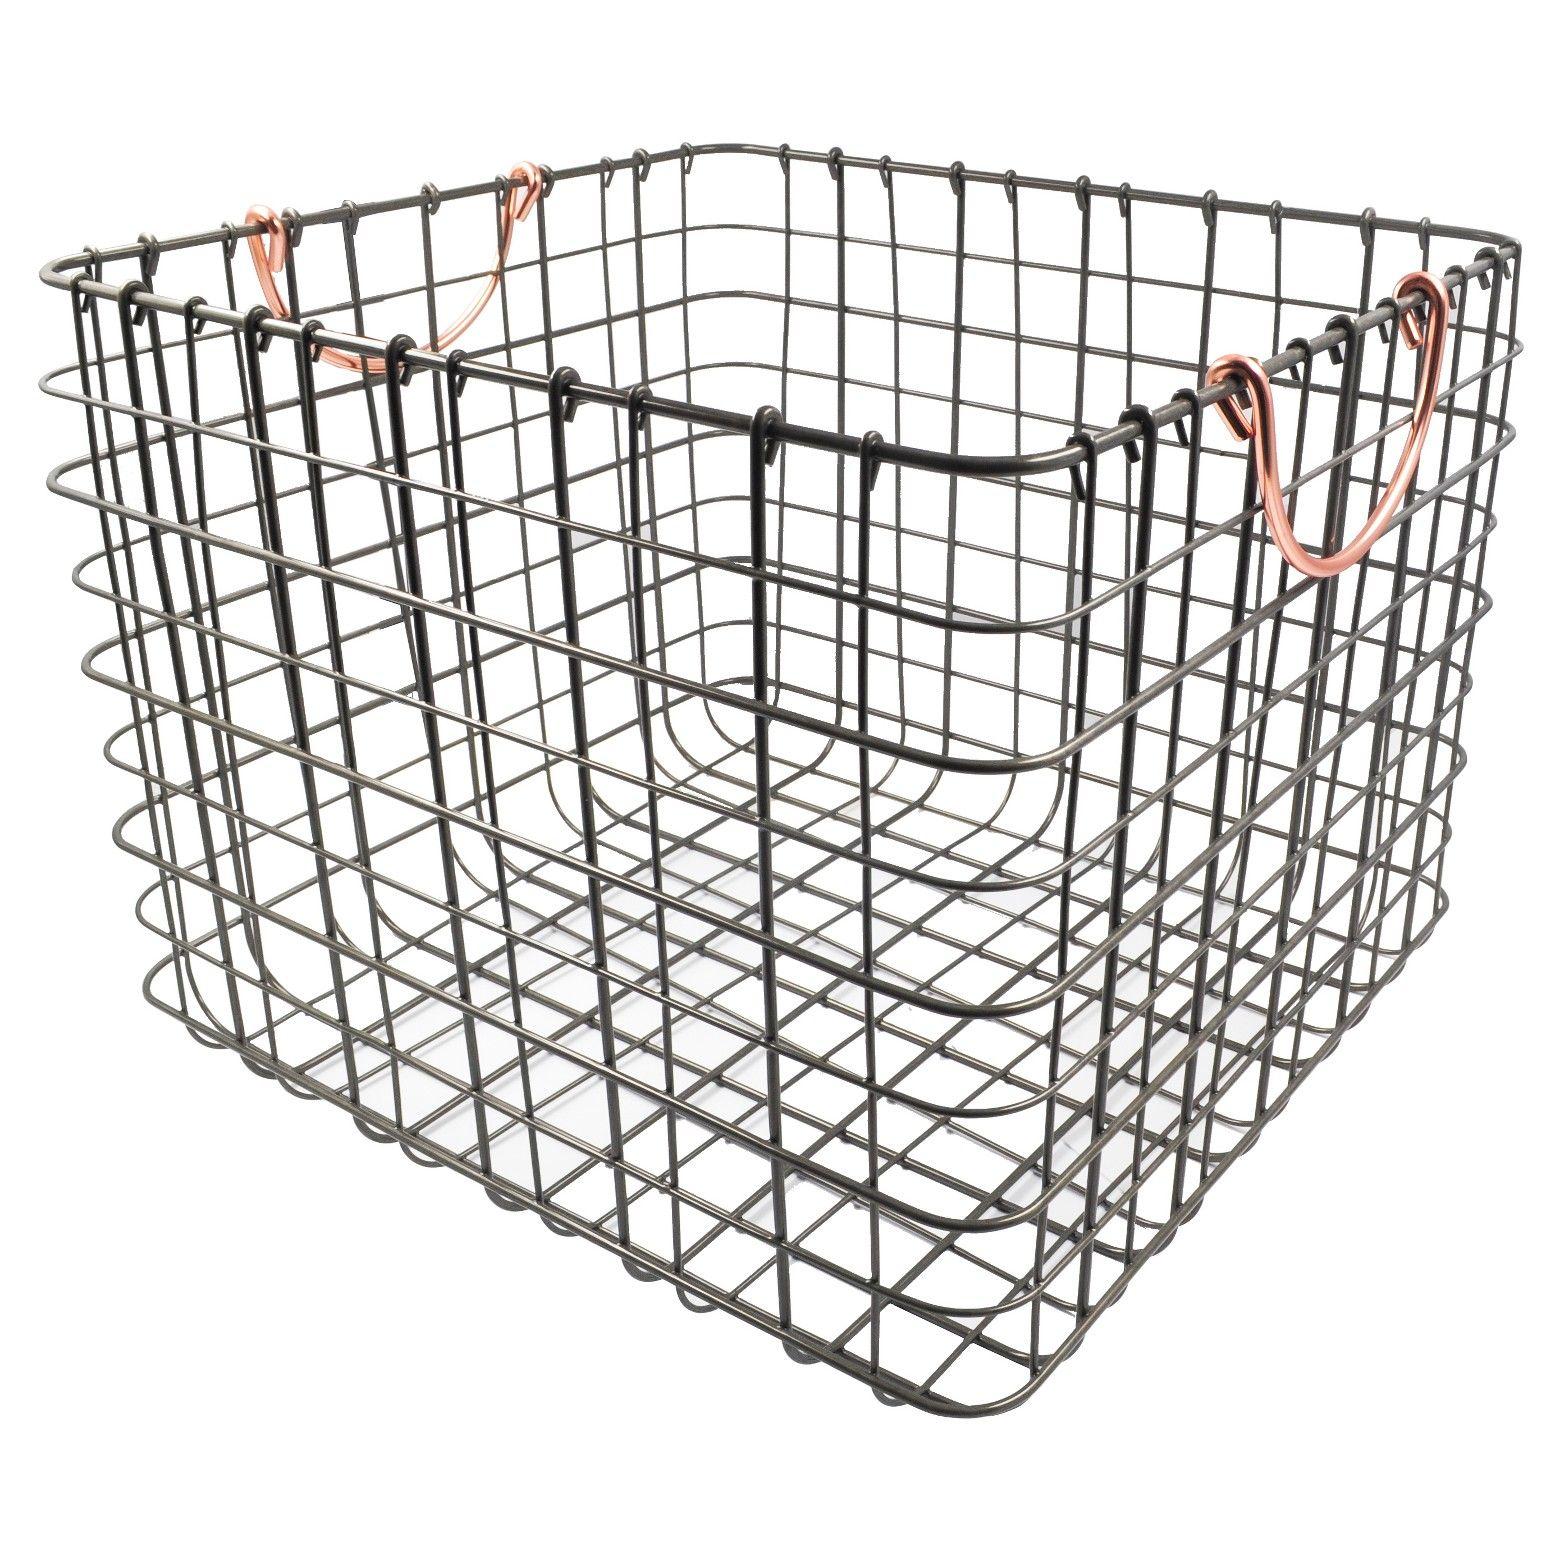 Large Wire Milk Crate With Handles Copper Threshold Milk Crates Copper Handles Crate Decor